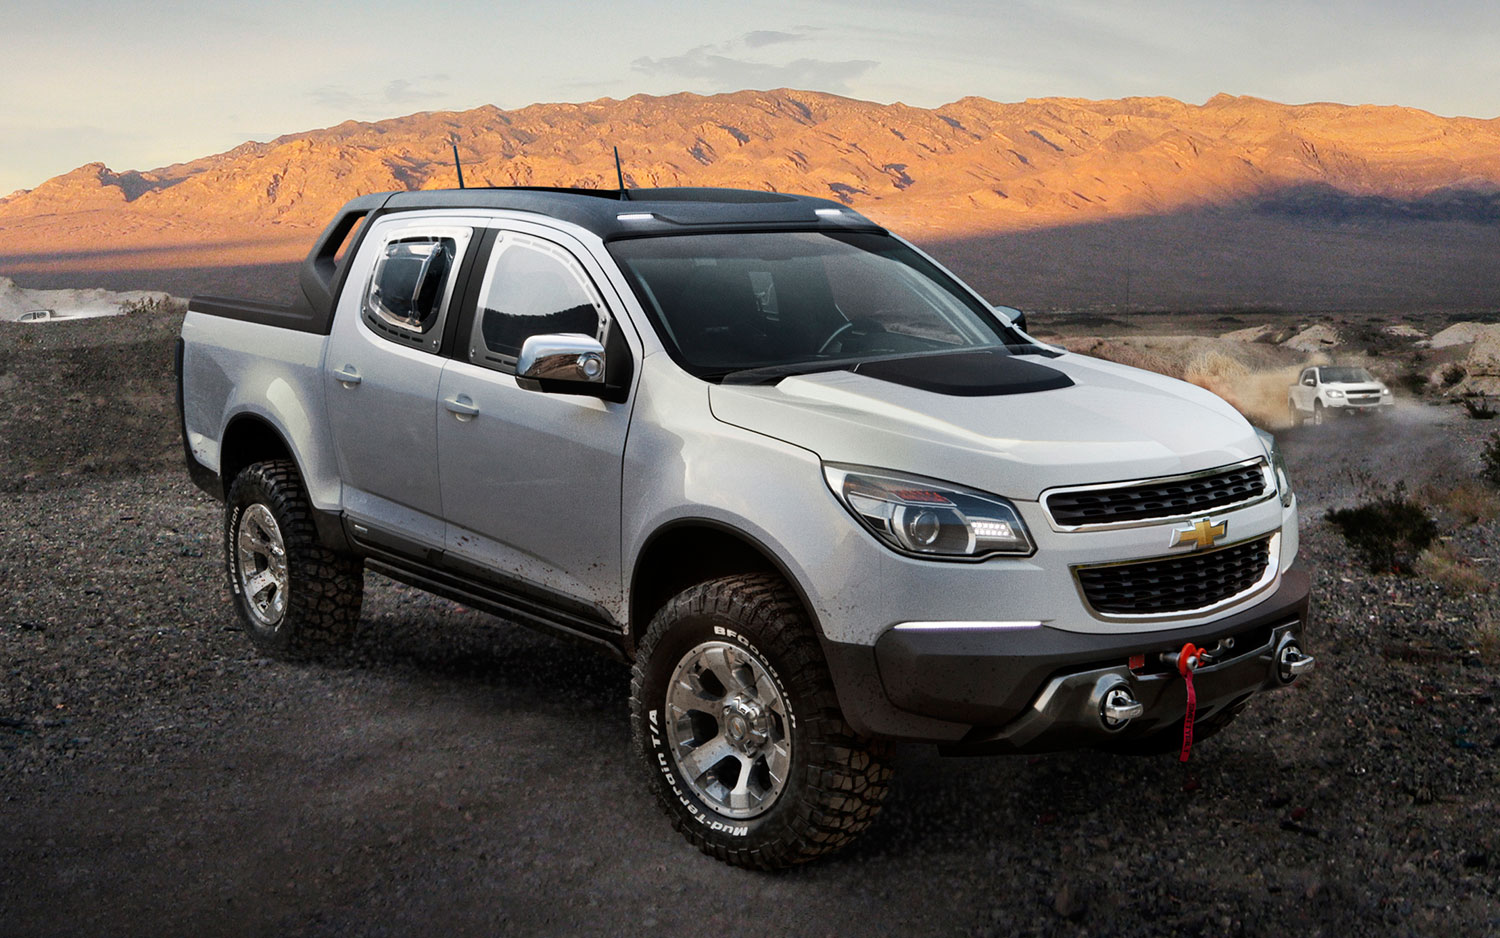 Chevrolet Colorado photo 11